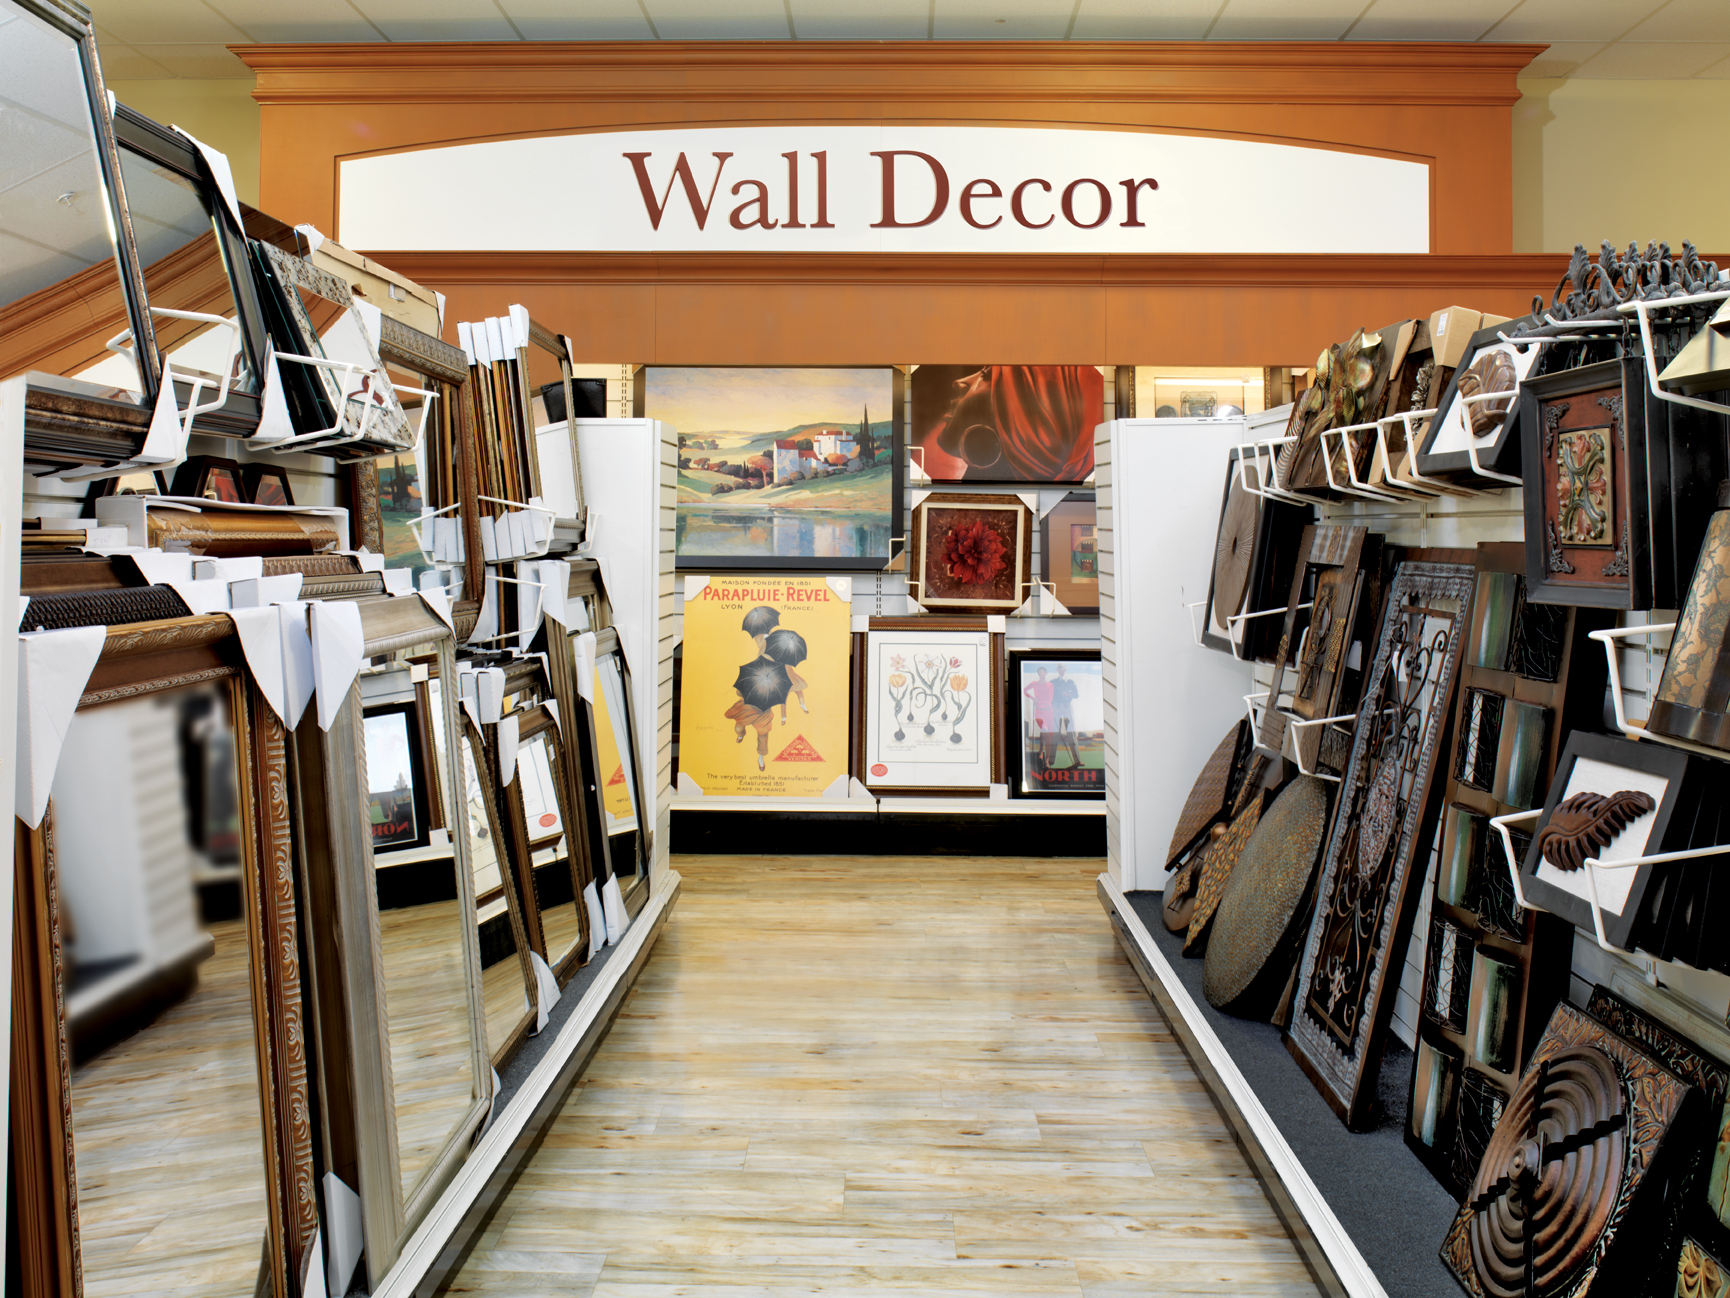 Wall Decor Stores New Hgpressstorewalldecorhi Bucks Happening Design  Inspiration